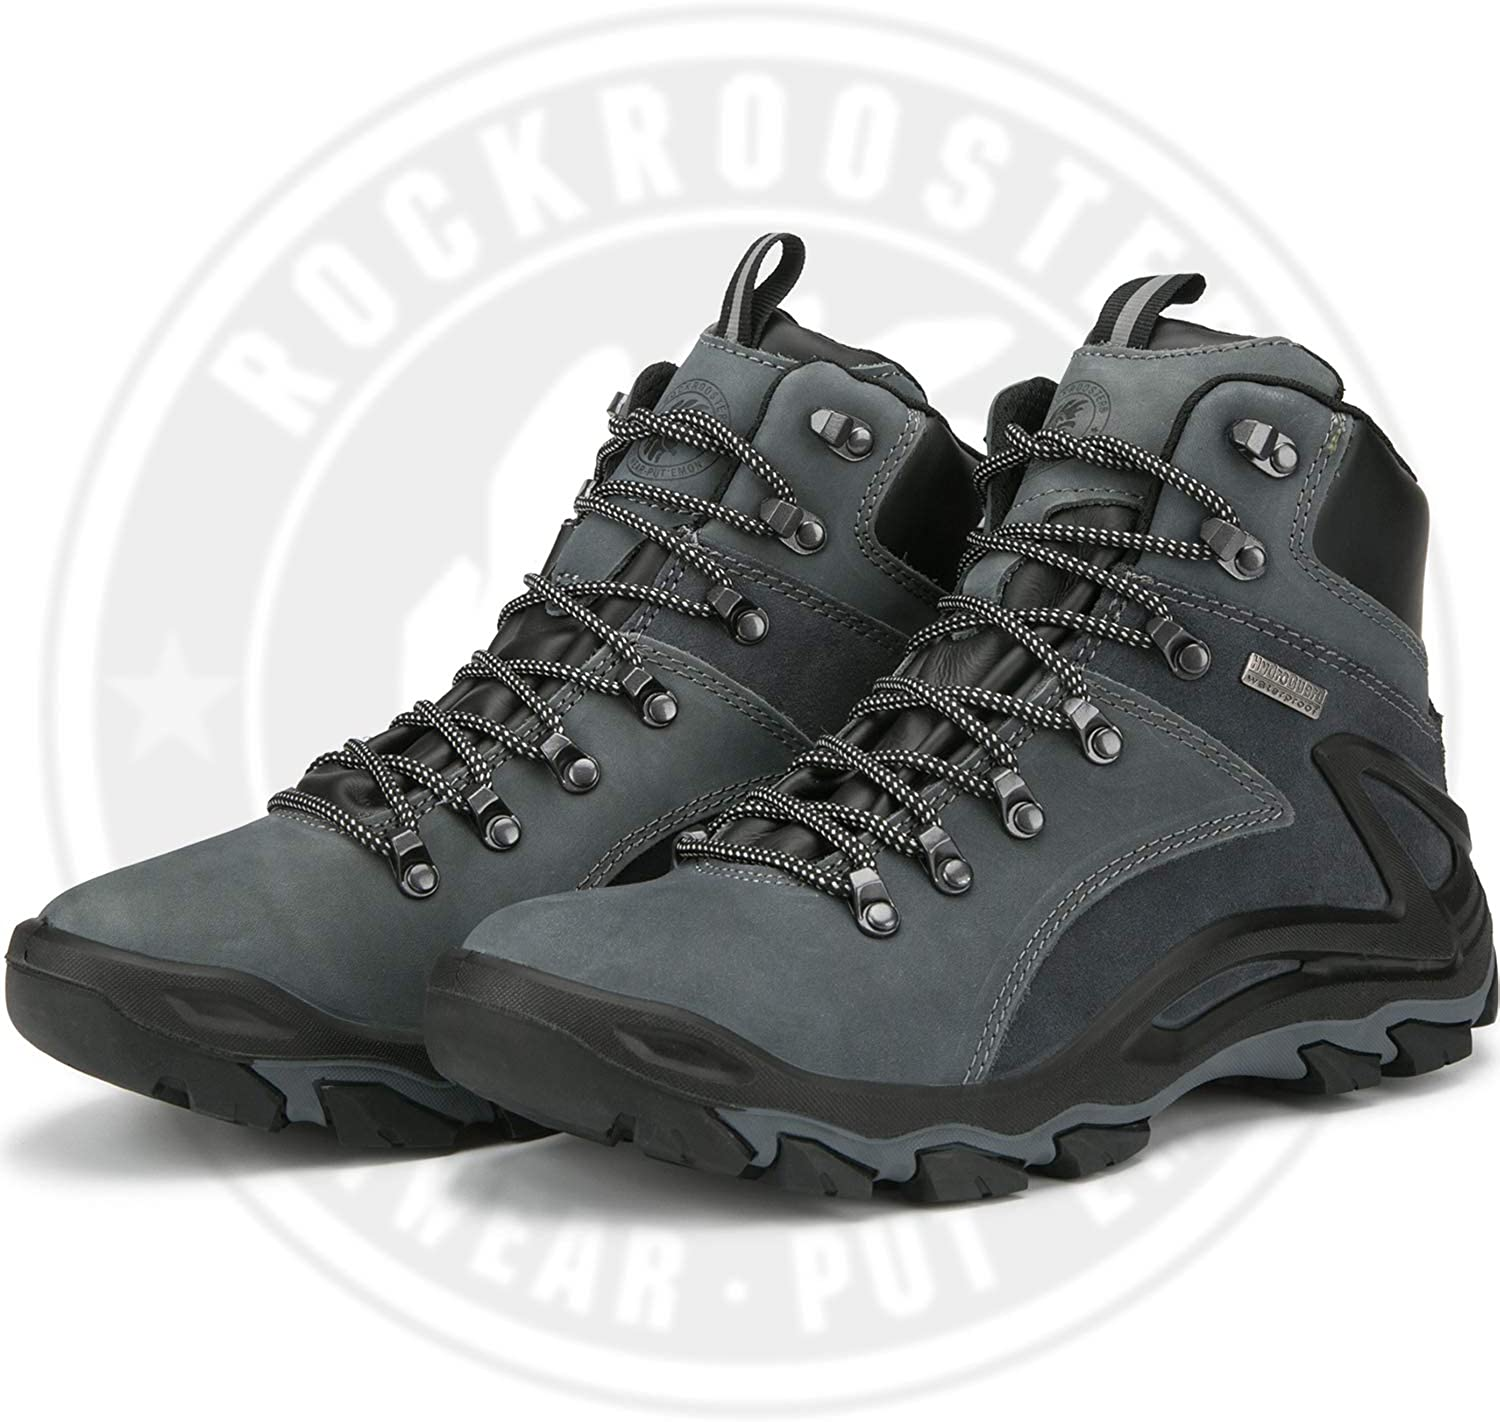 Lightweight Coolmax Anti-Fatigue,KS257 KS258 Ankle Waterproof 6 Non Slip Outdoor Mountaineeting Shoes ROCKROOSTER Mens Hiking Boots Breathable